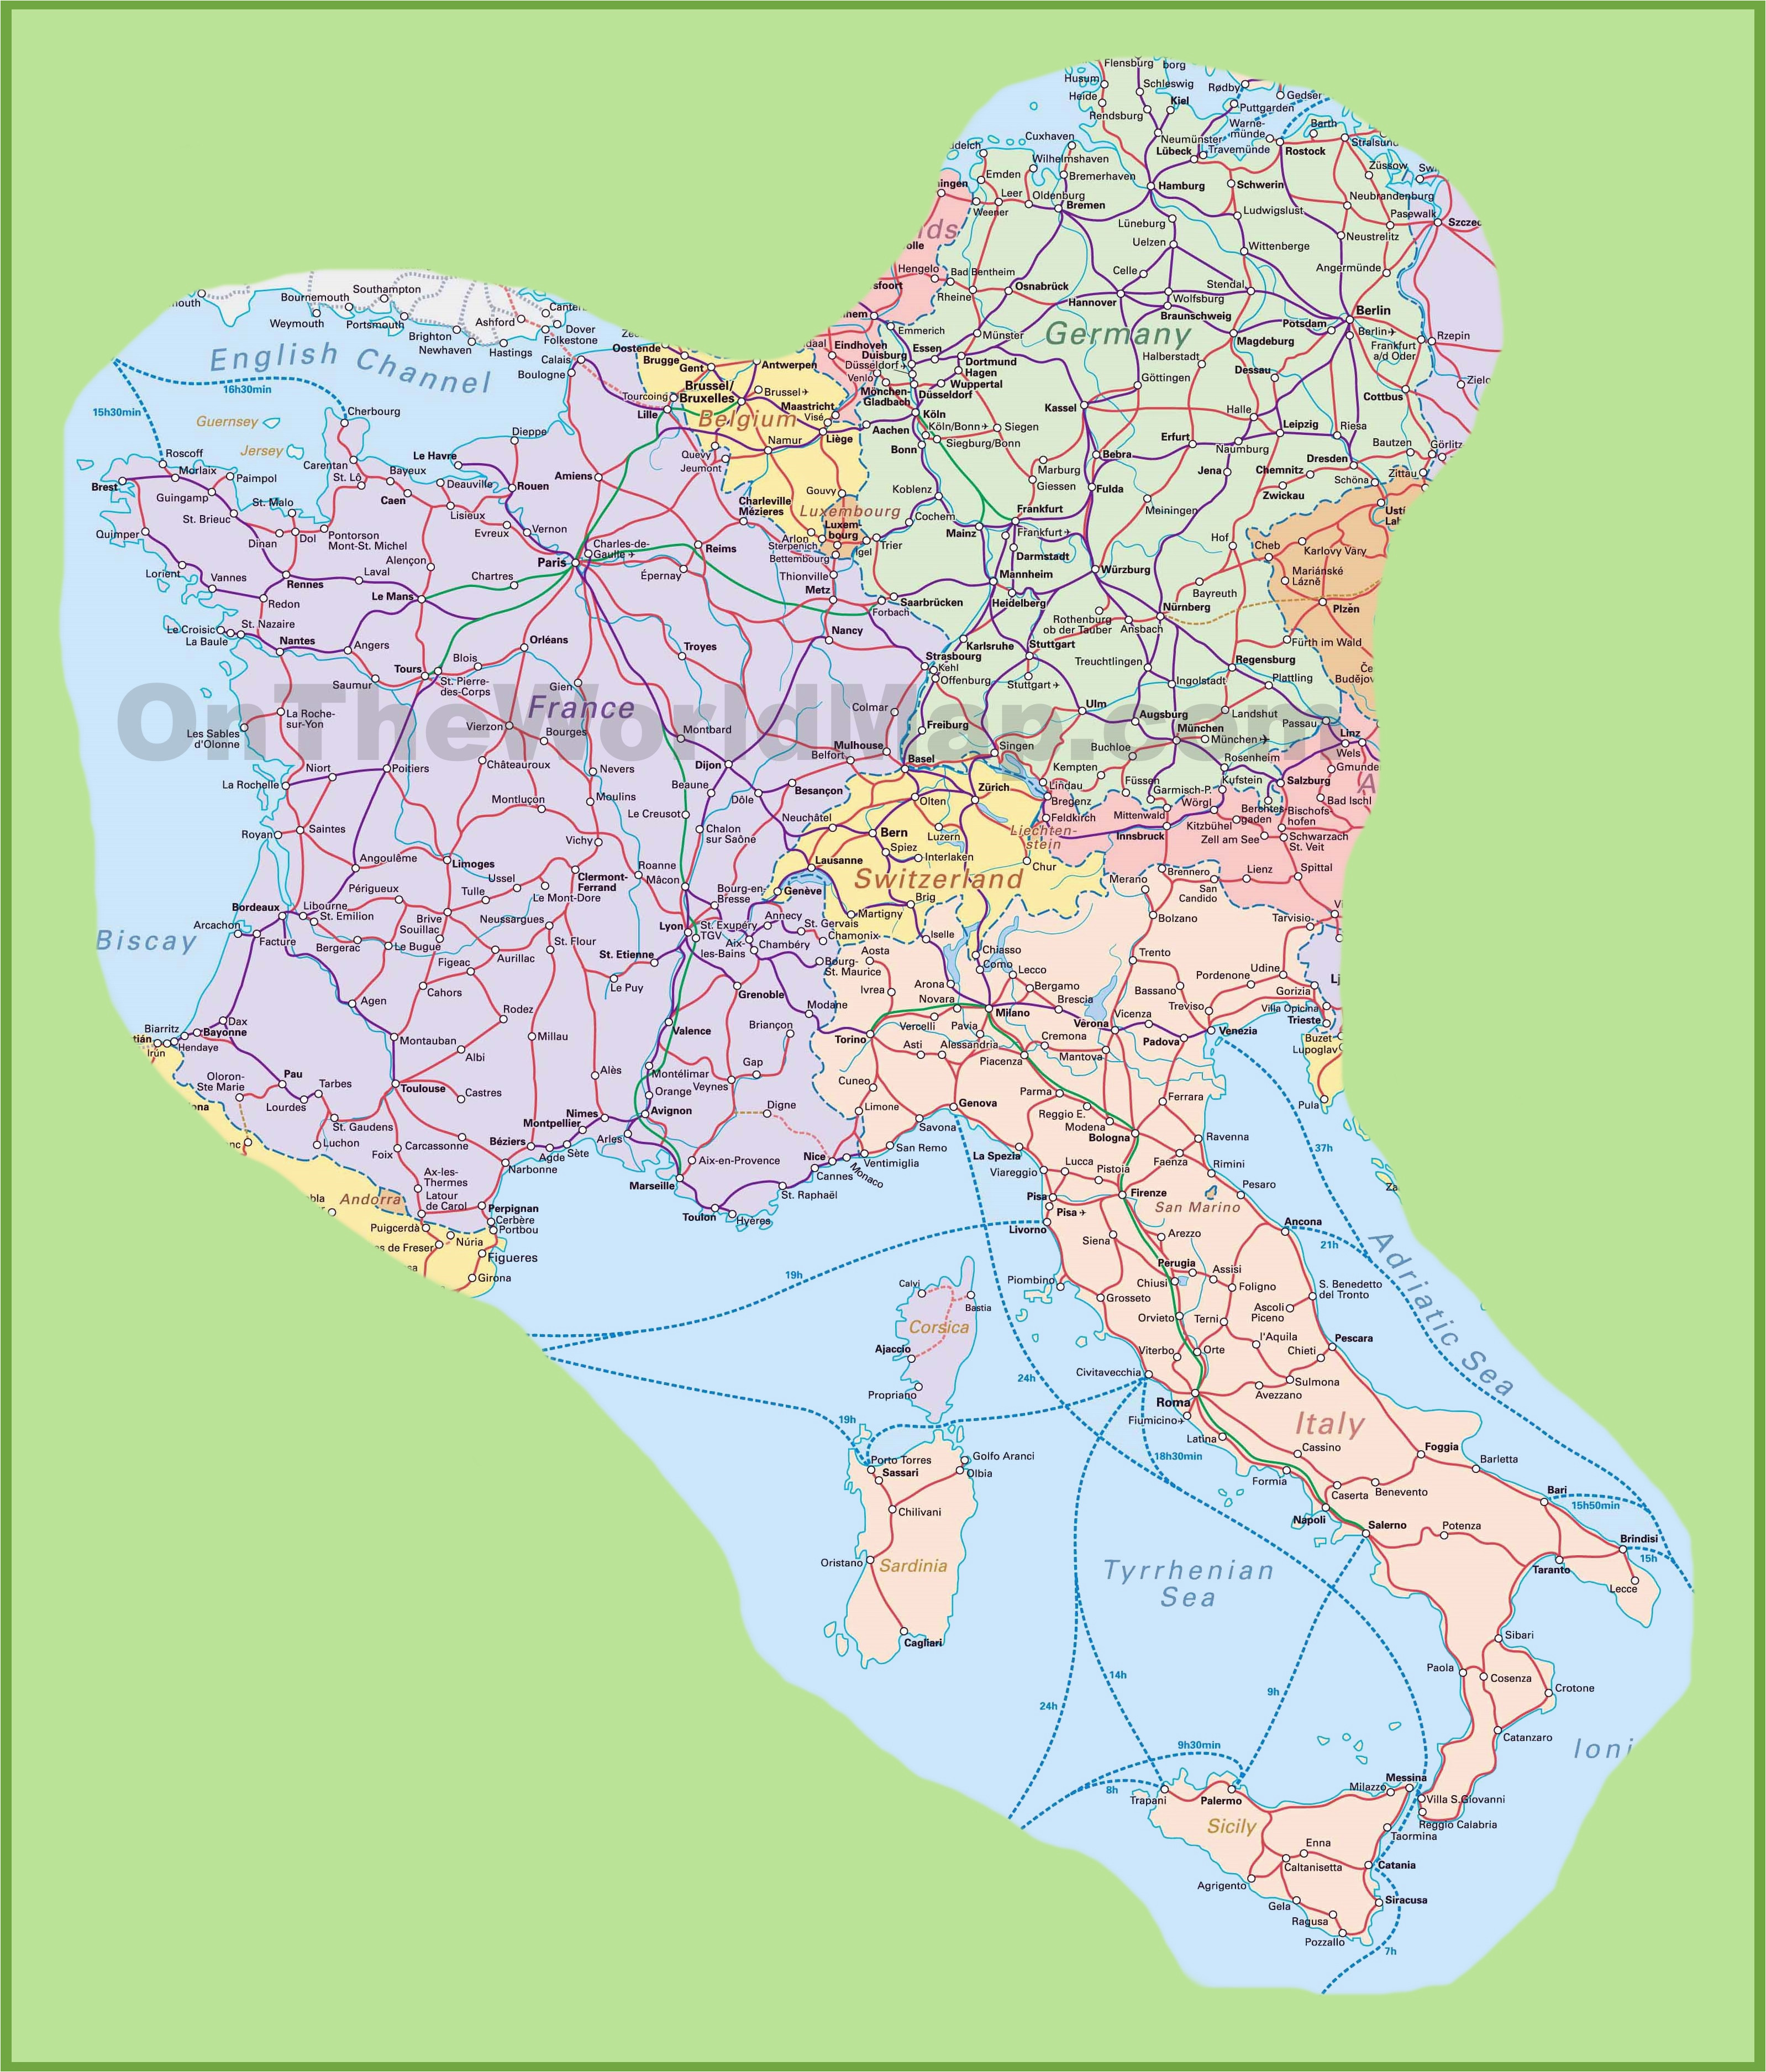 Detailed Map Of Germany.Detailed Map Of Italy Cities Map Of Switzerland Italy Germany And